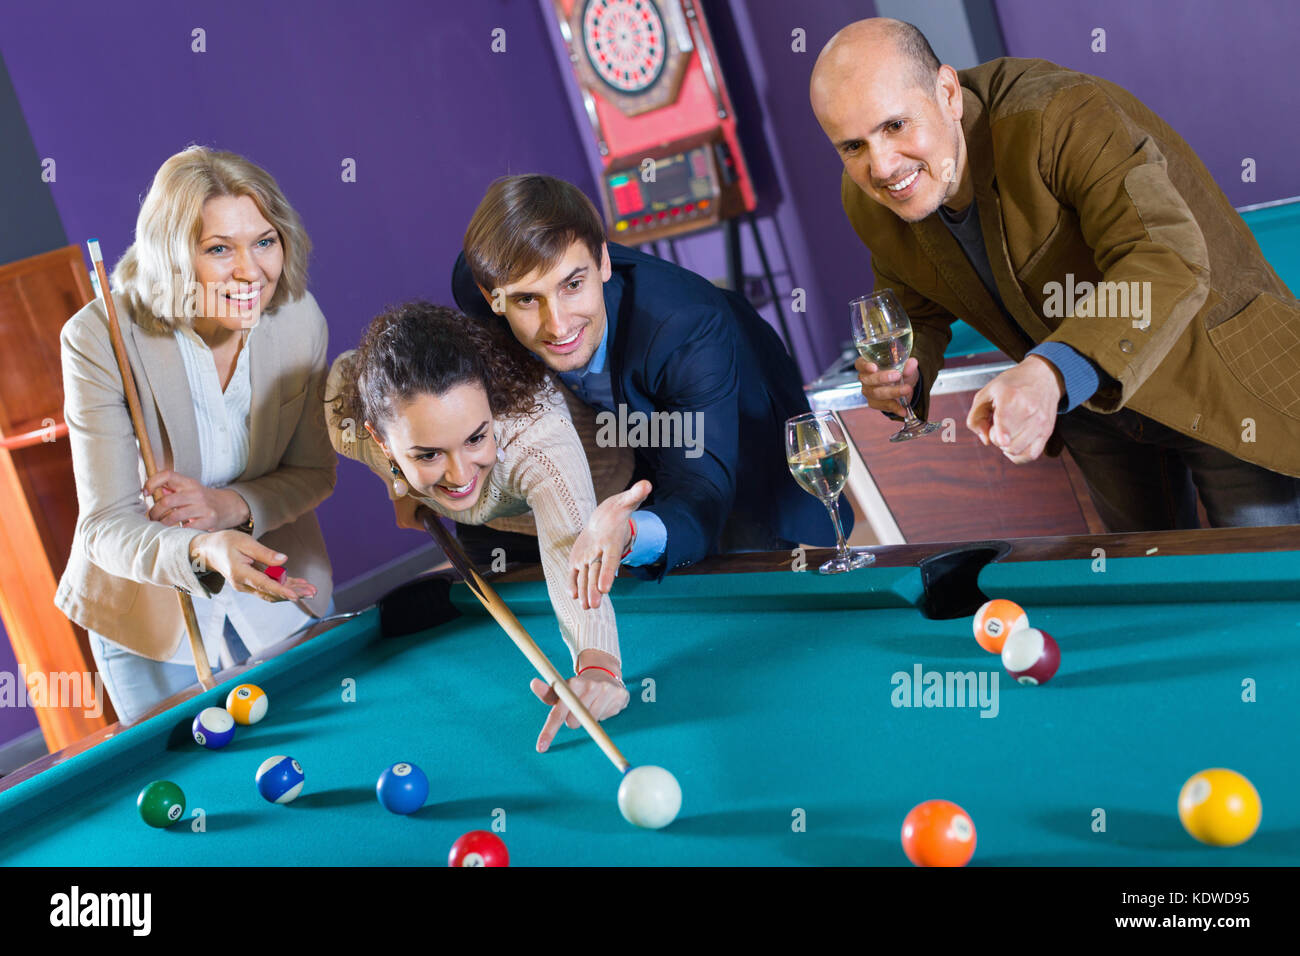 Pool Darts Stock Photos Amp Pool Darts Stock Images Alamy